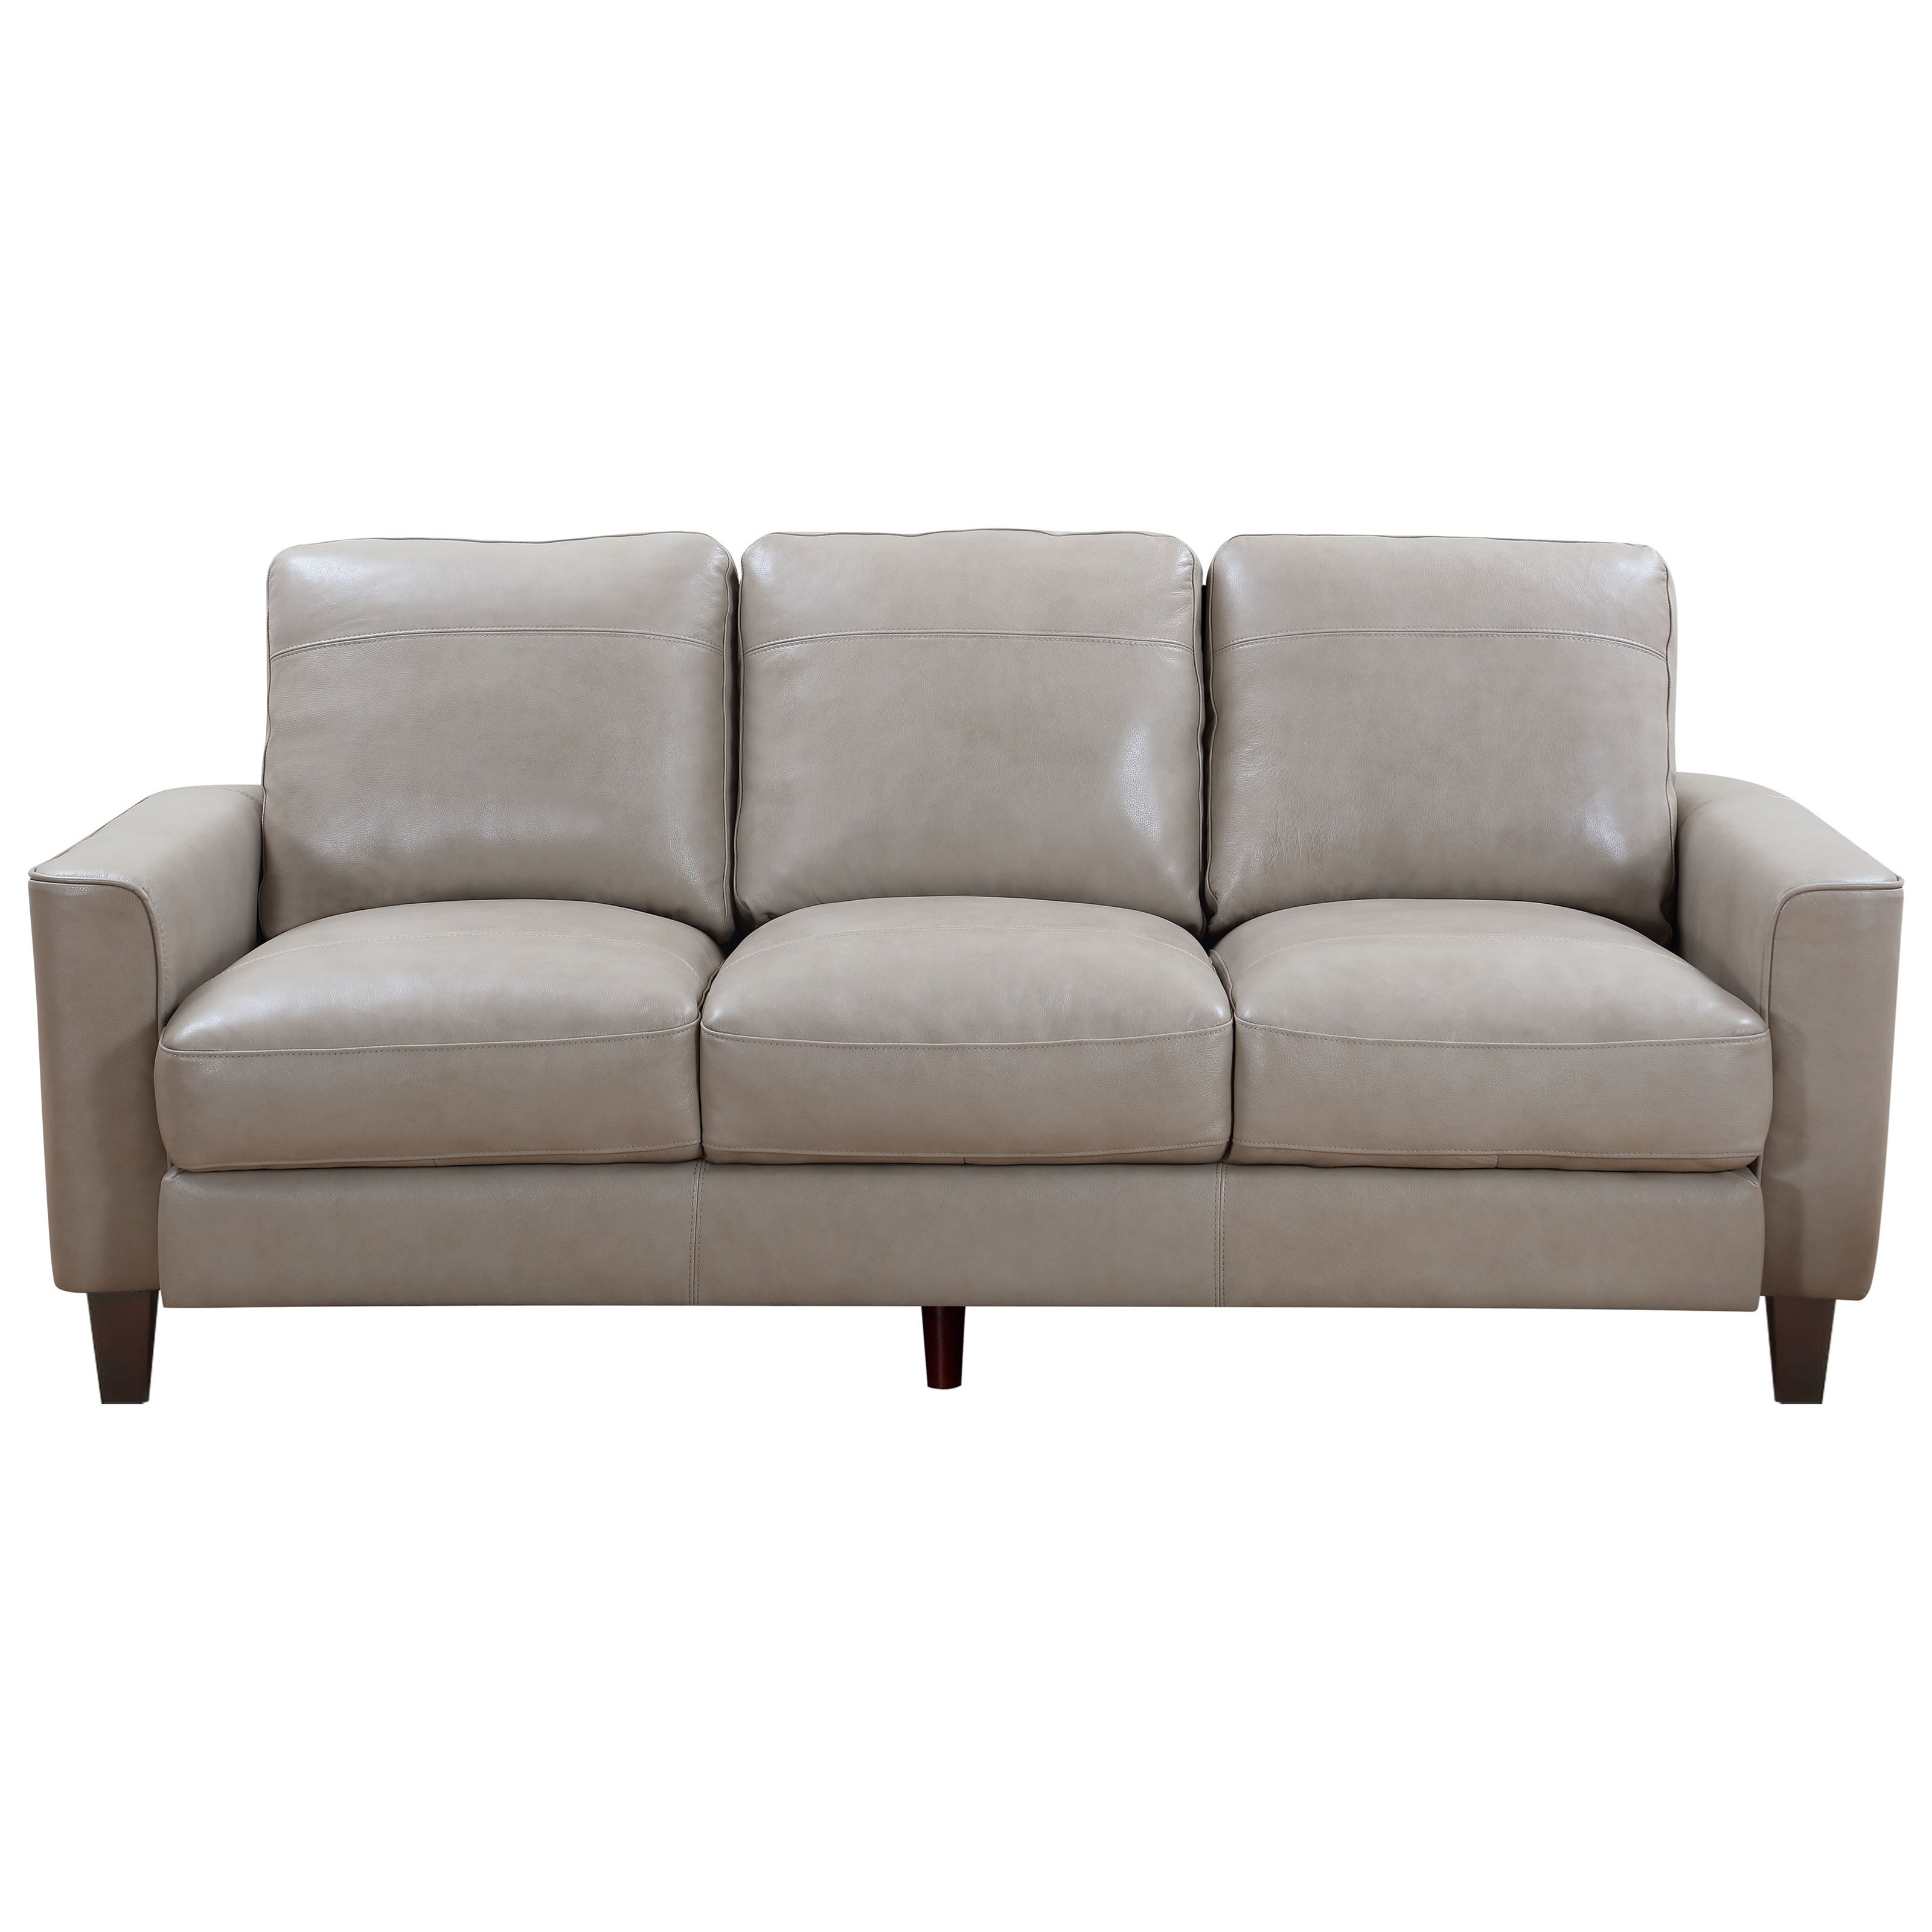 Chino Leather Sofa at Rotmans